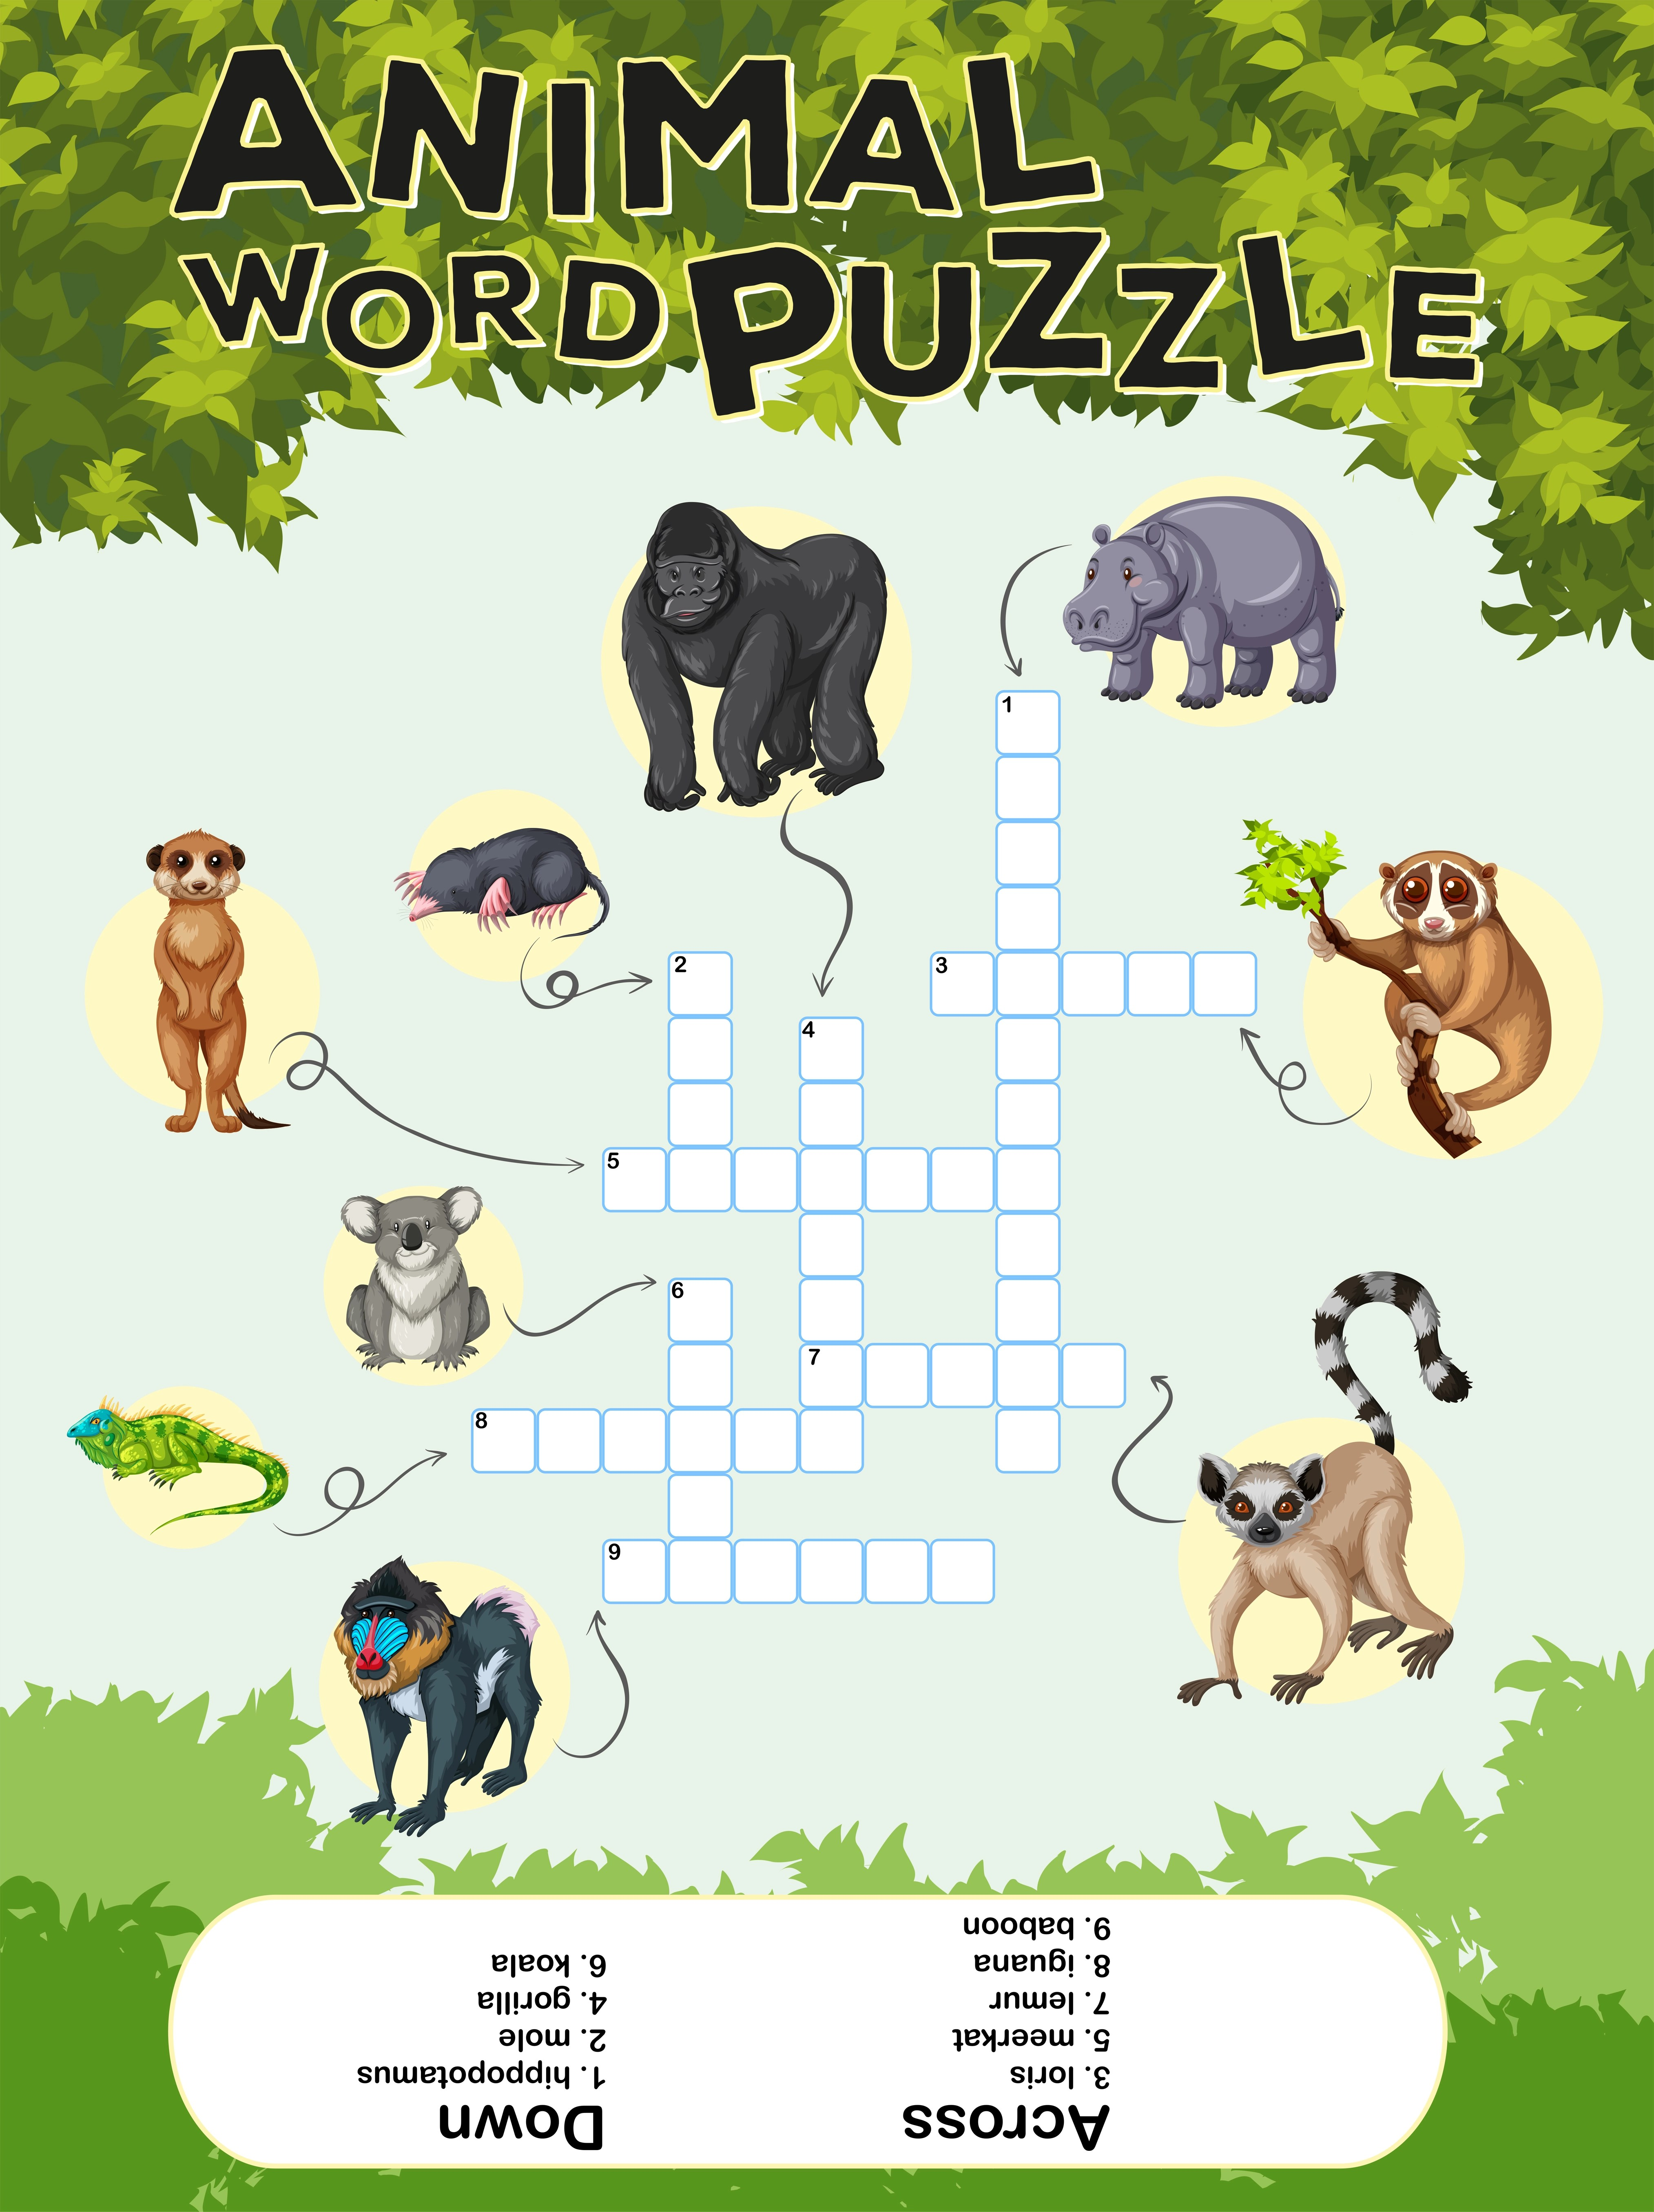 Game Design For Animal Word Puzzle